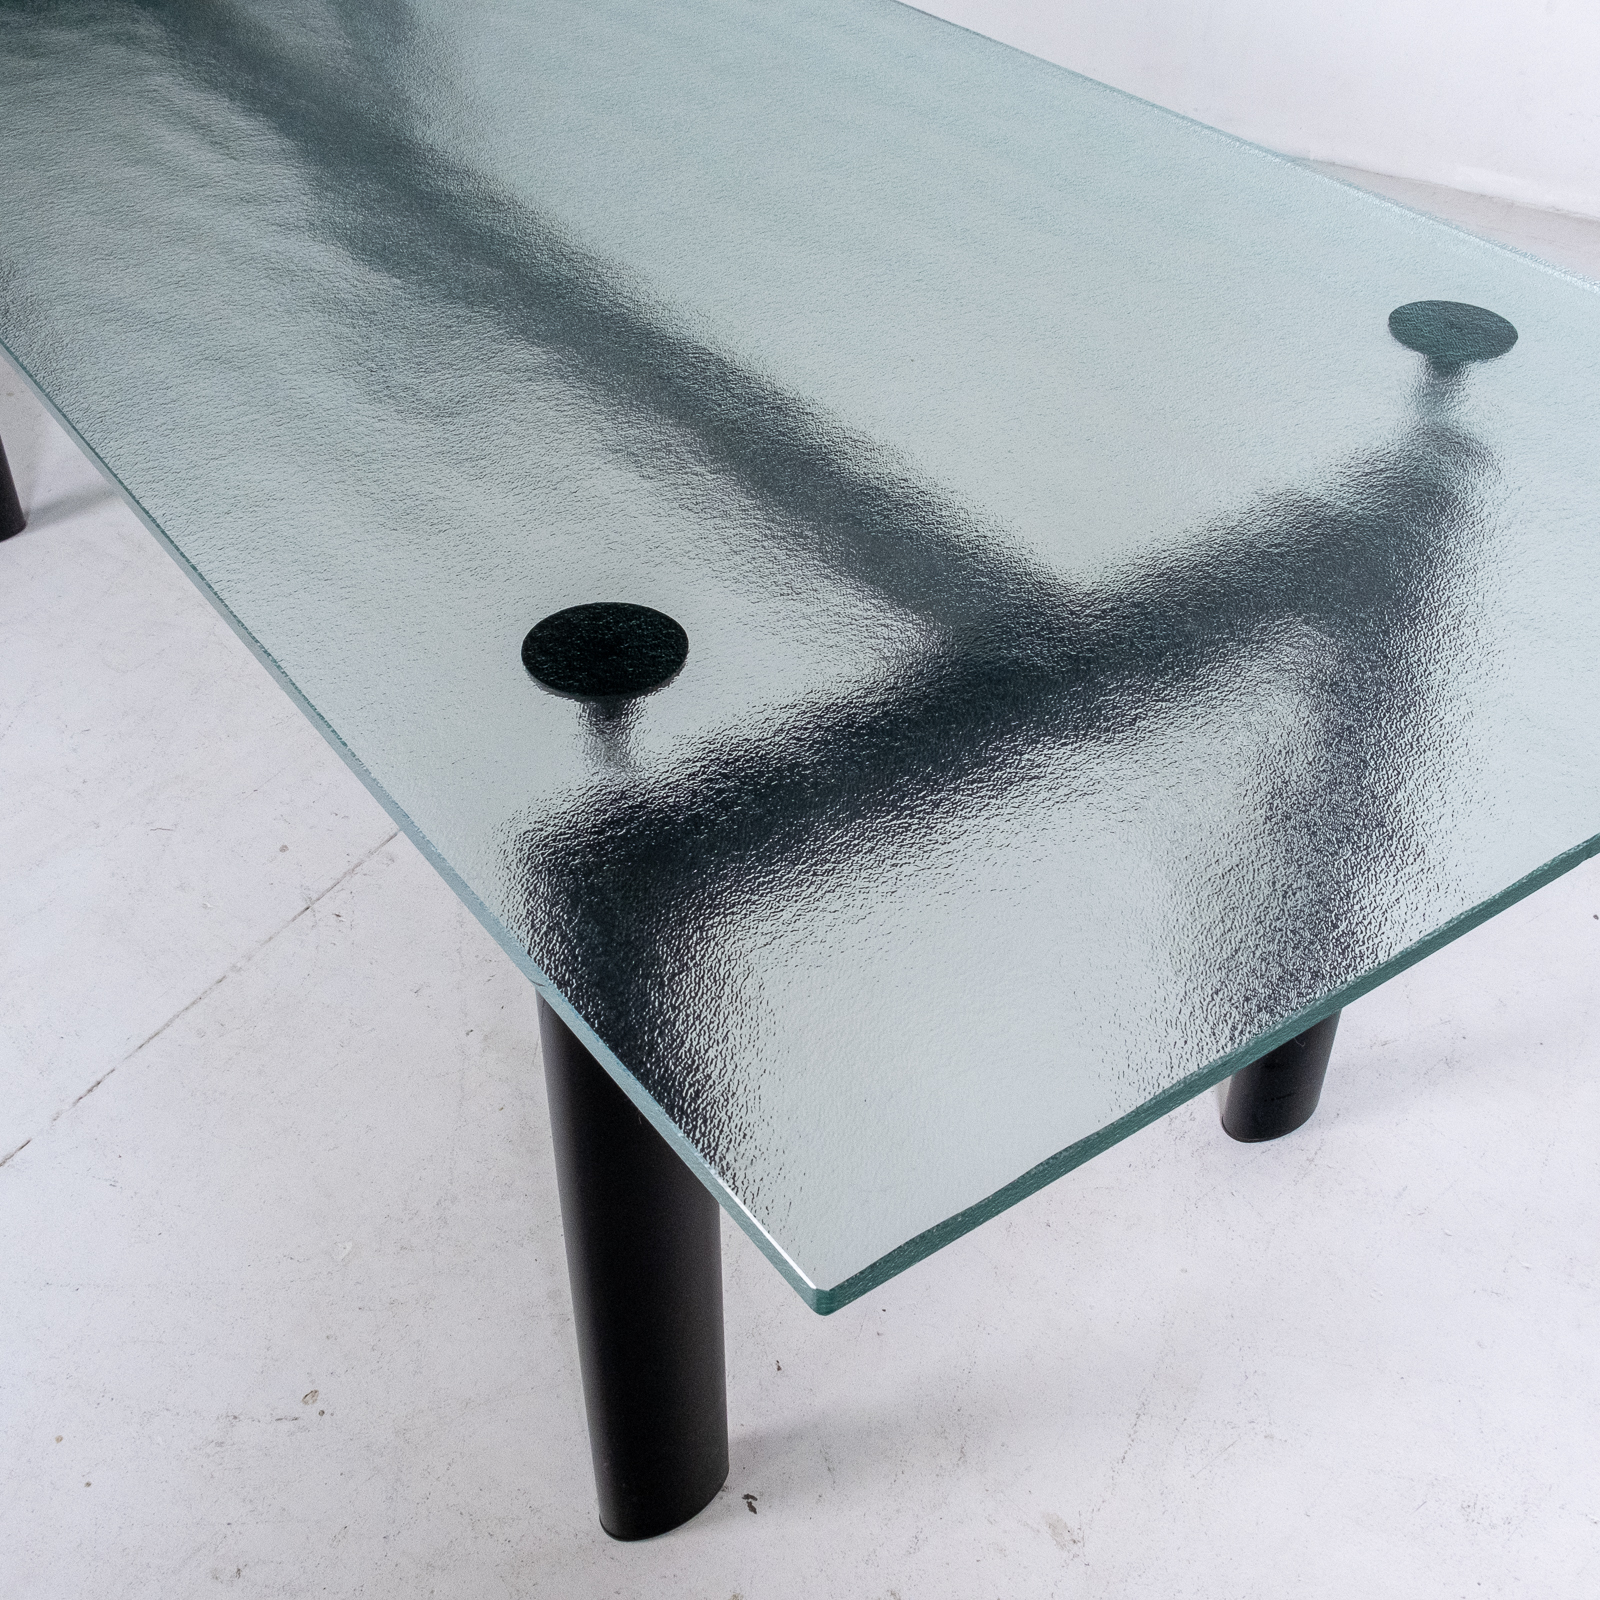 Model Lc6 Glass Table By Le Corbusier For Cassina, 1990s, Italy9